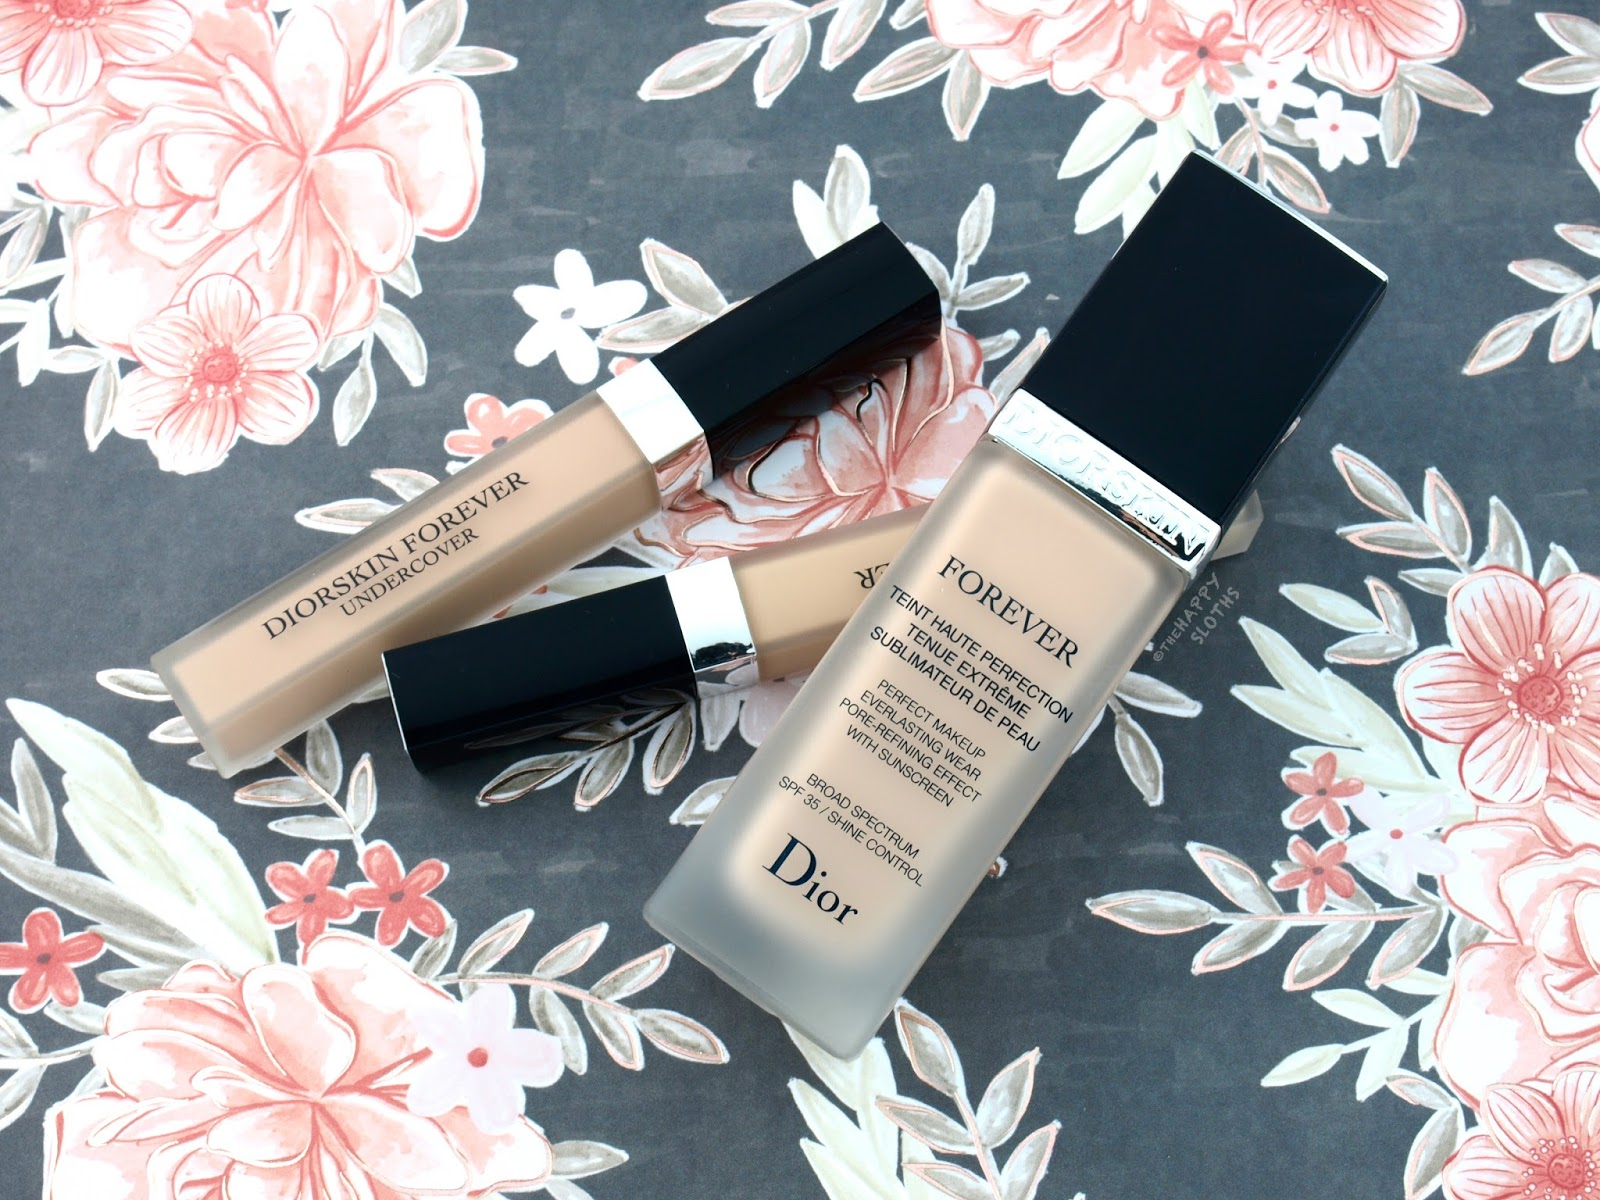 Dior Diorskin Forever Perfect Foundation & Forever Undercover Concealer: Review and Swatches